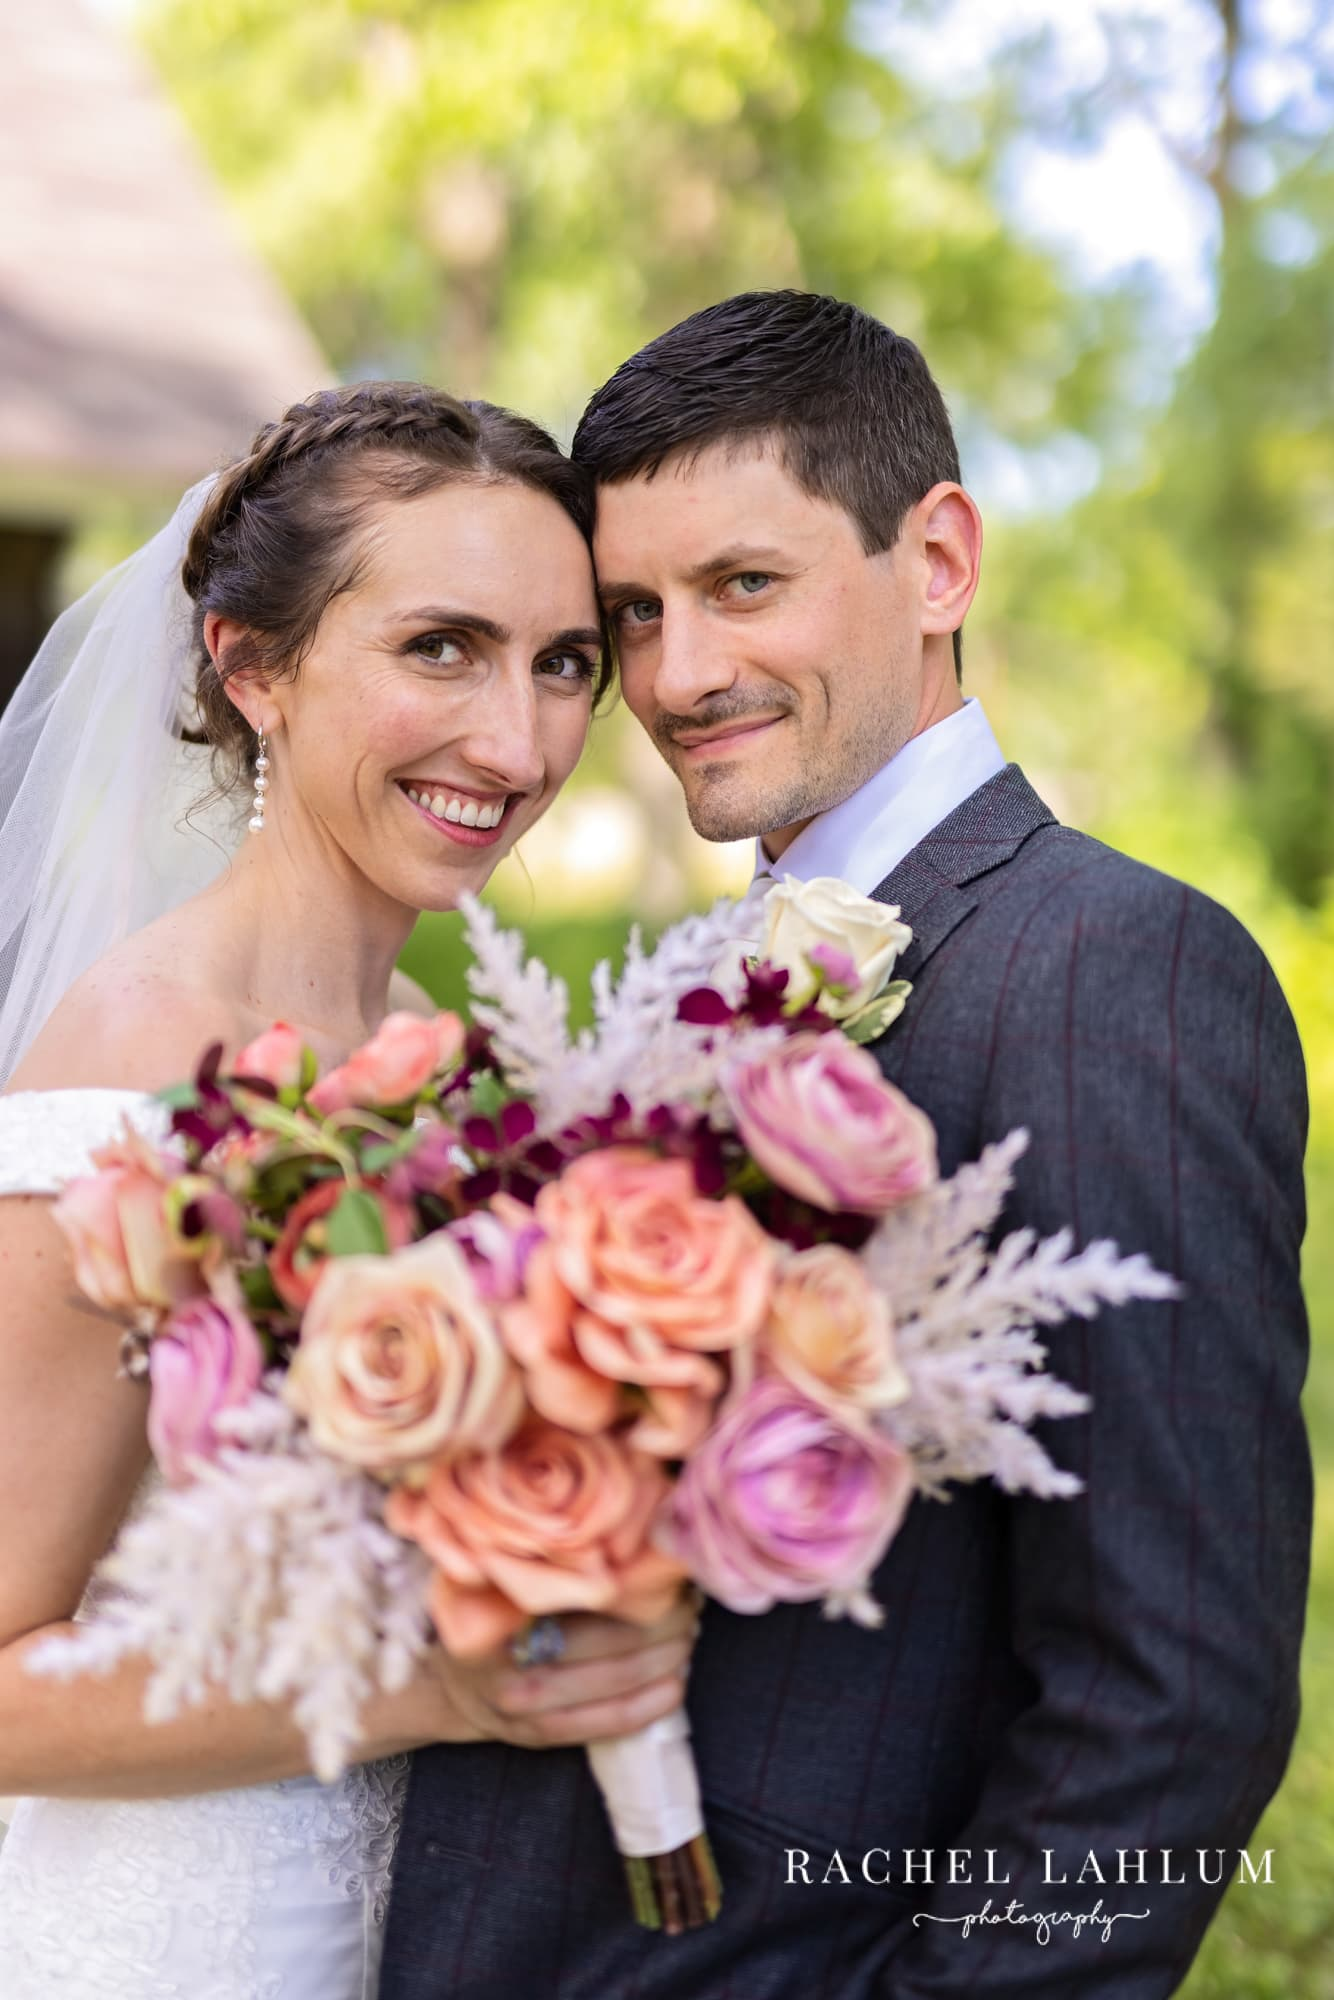 Bride and groom smile behind bouquet after wedding ceremony in St. Paul, MN.